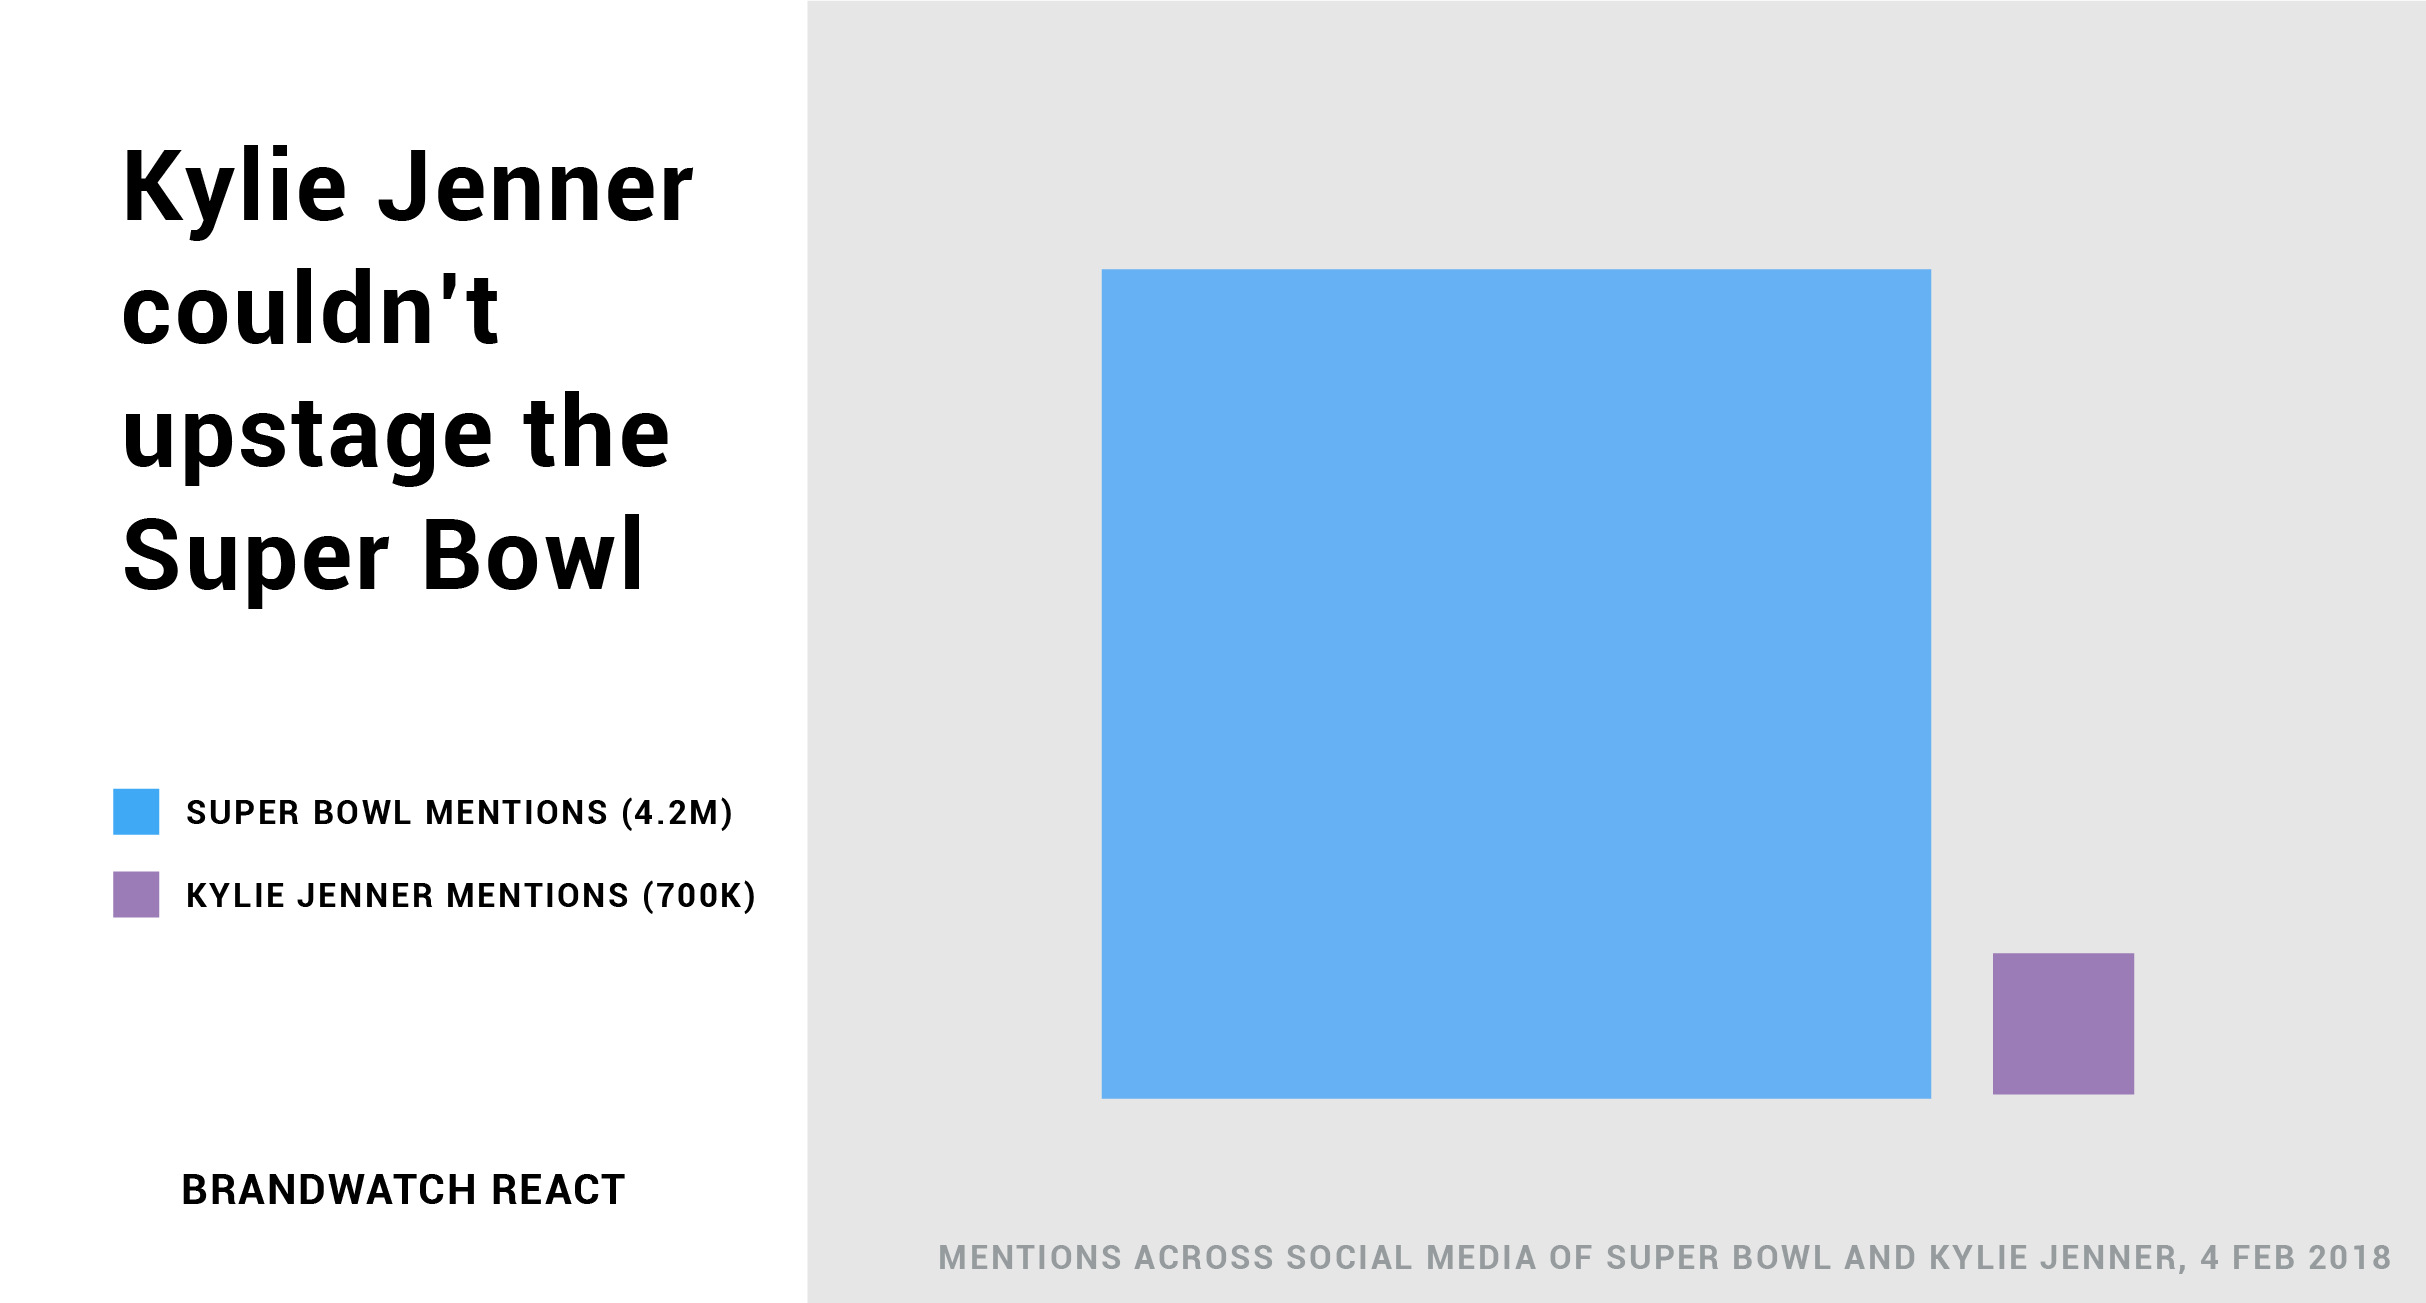 2 boxes show relative size of Kylie Jenner conversation and Super Bowl conversation.